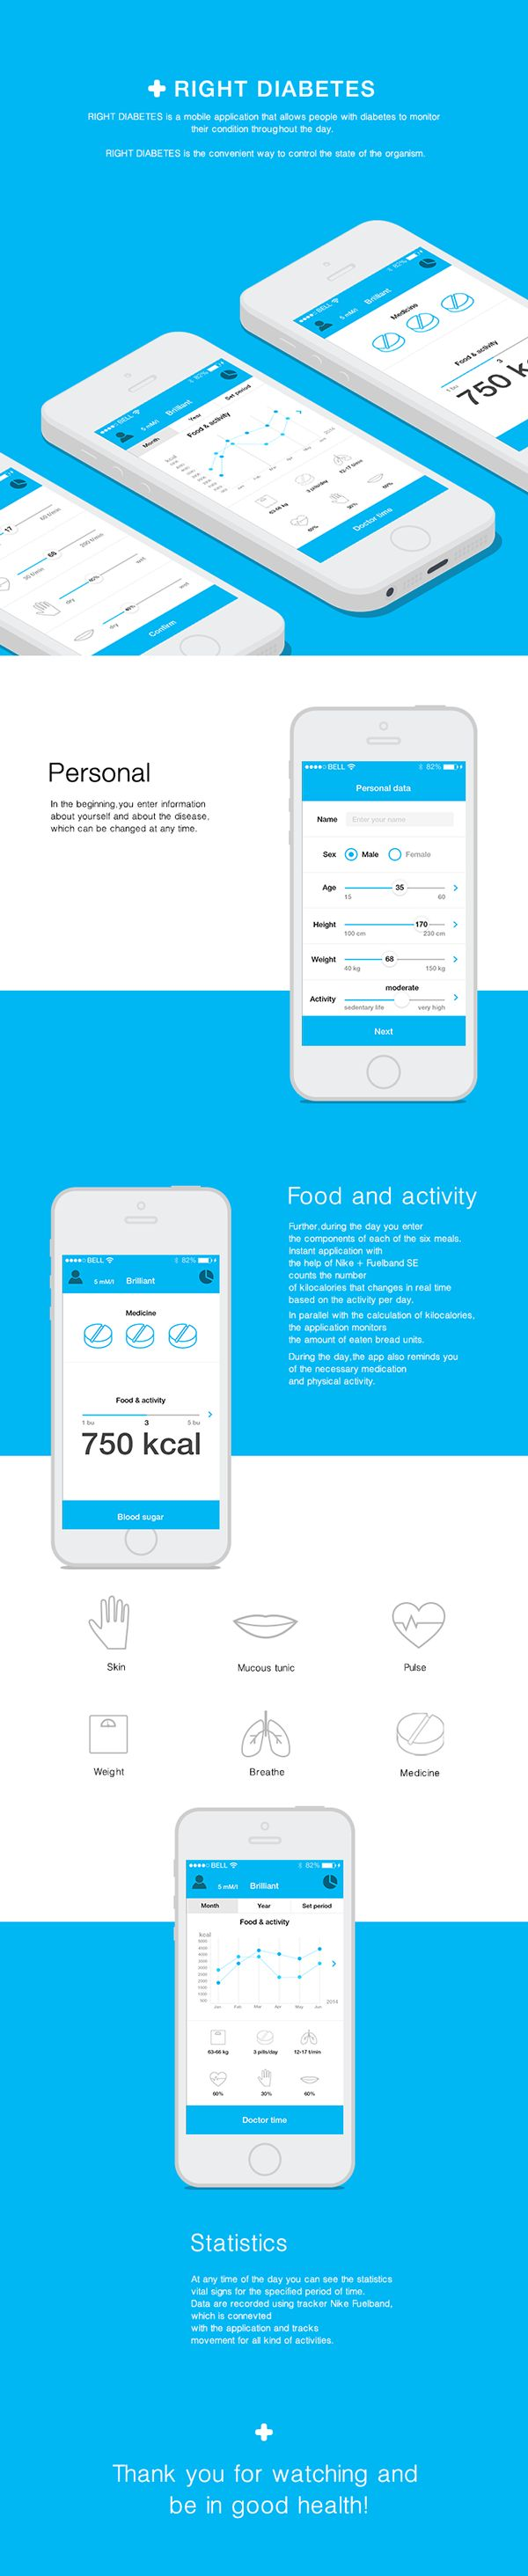 Unique App Design, Right Diabetes #App #Design (http://www.pinterest.com/aldenchong/)